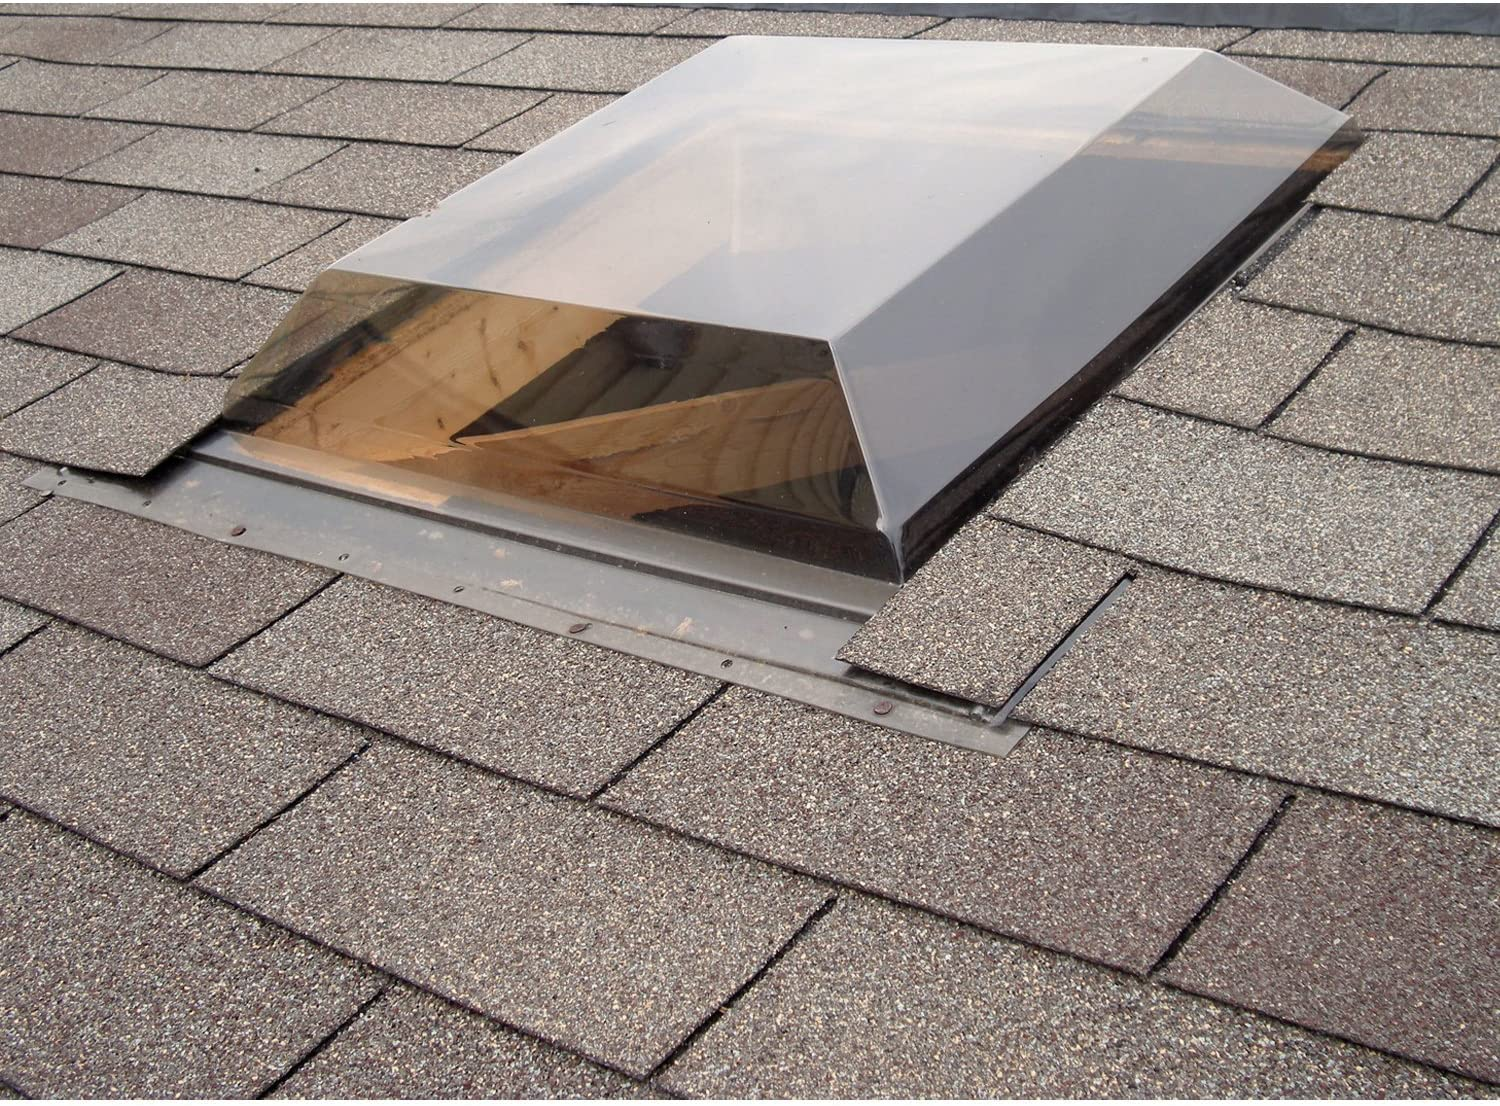 24 x 24 Handy Home Products Skylight